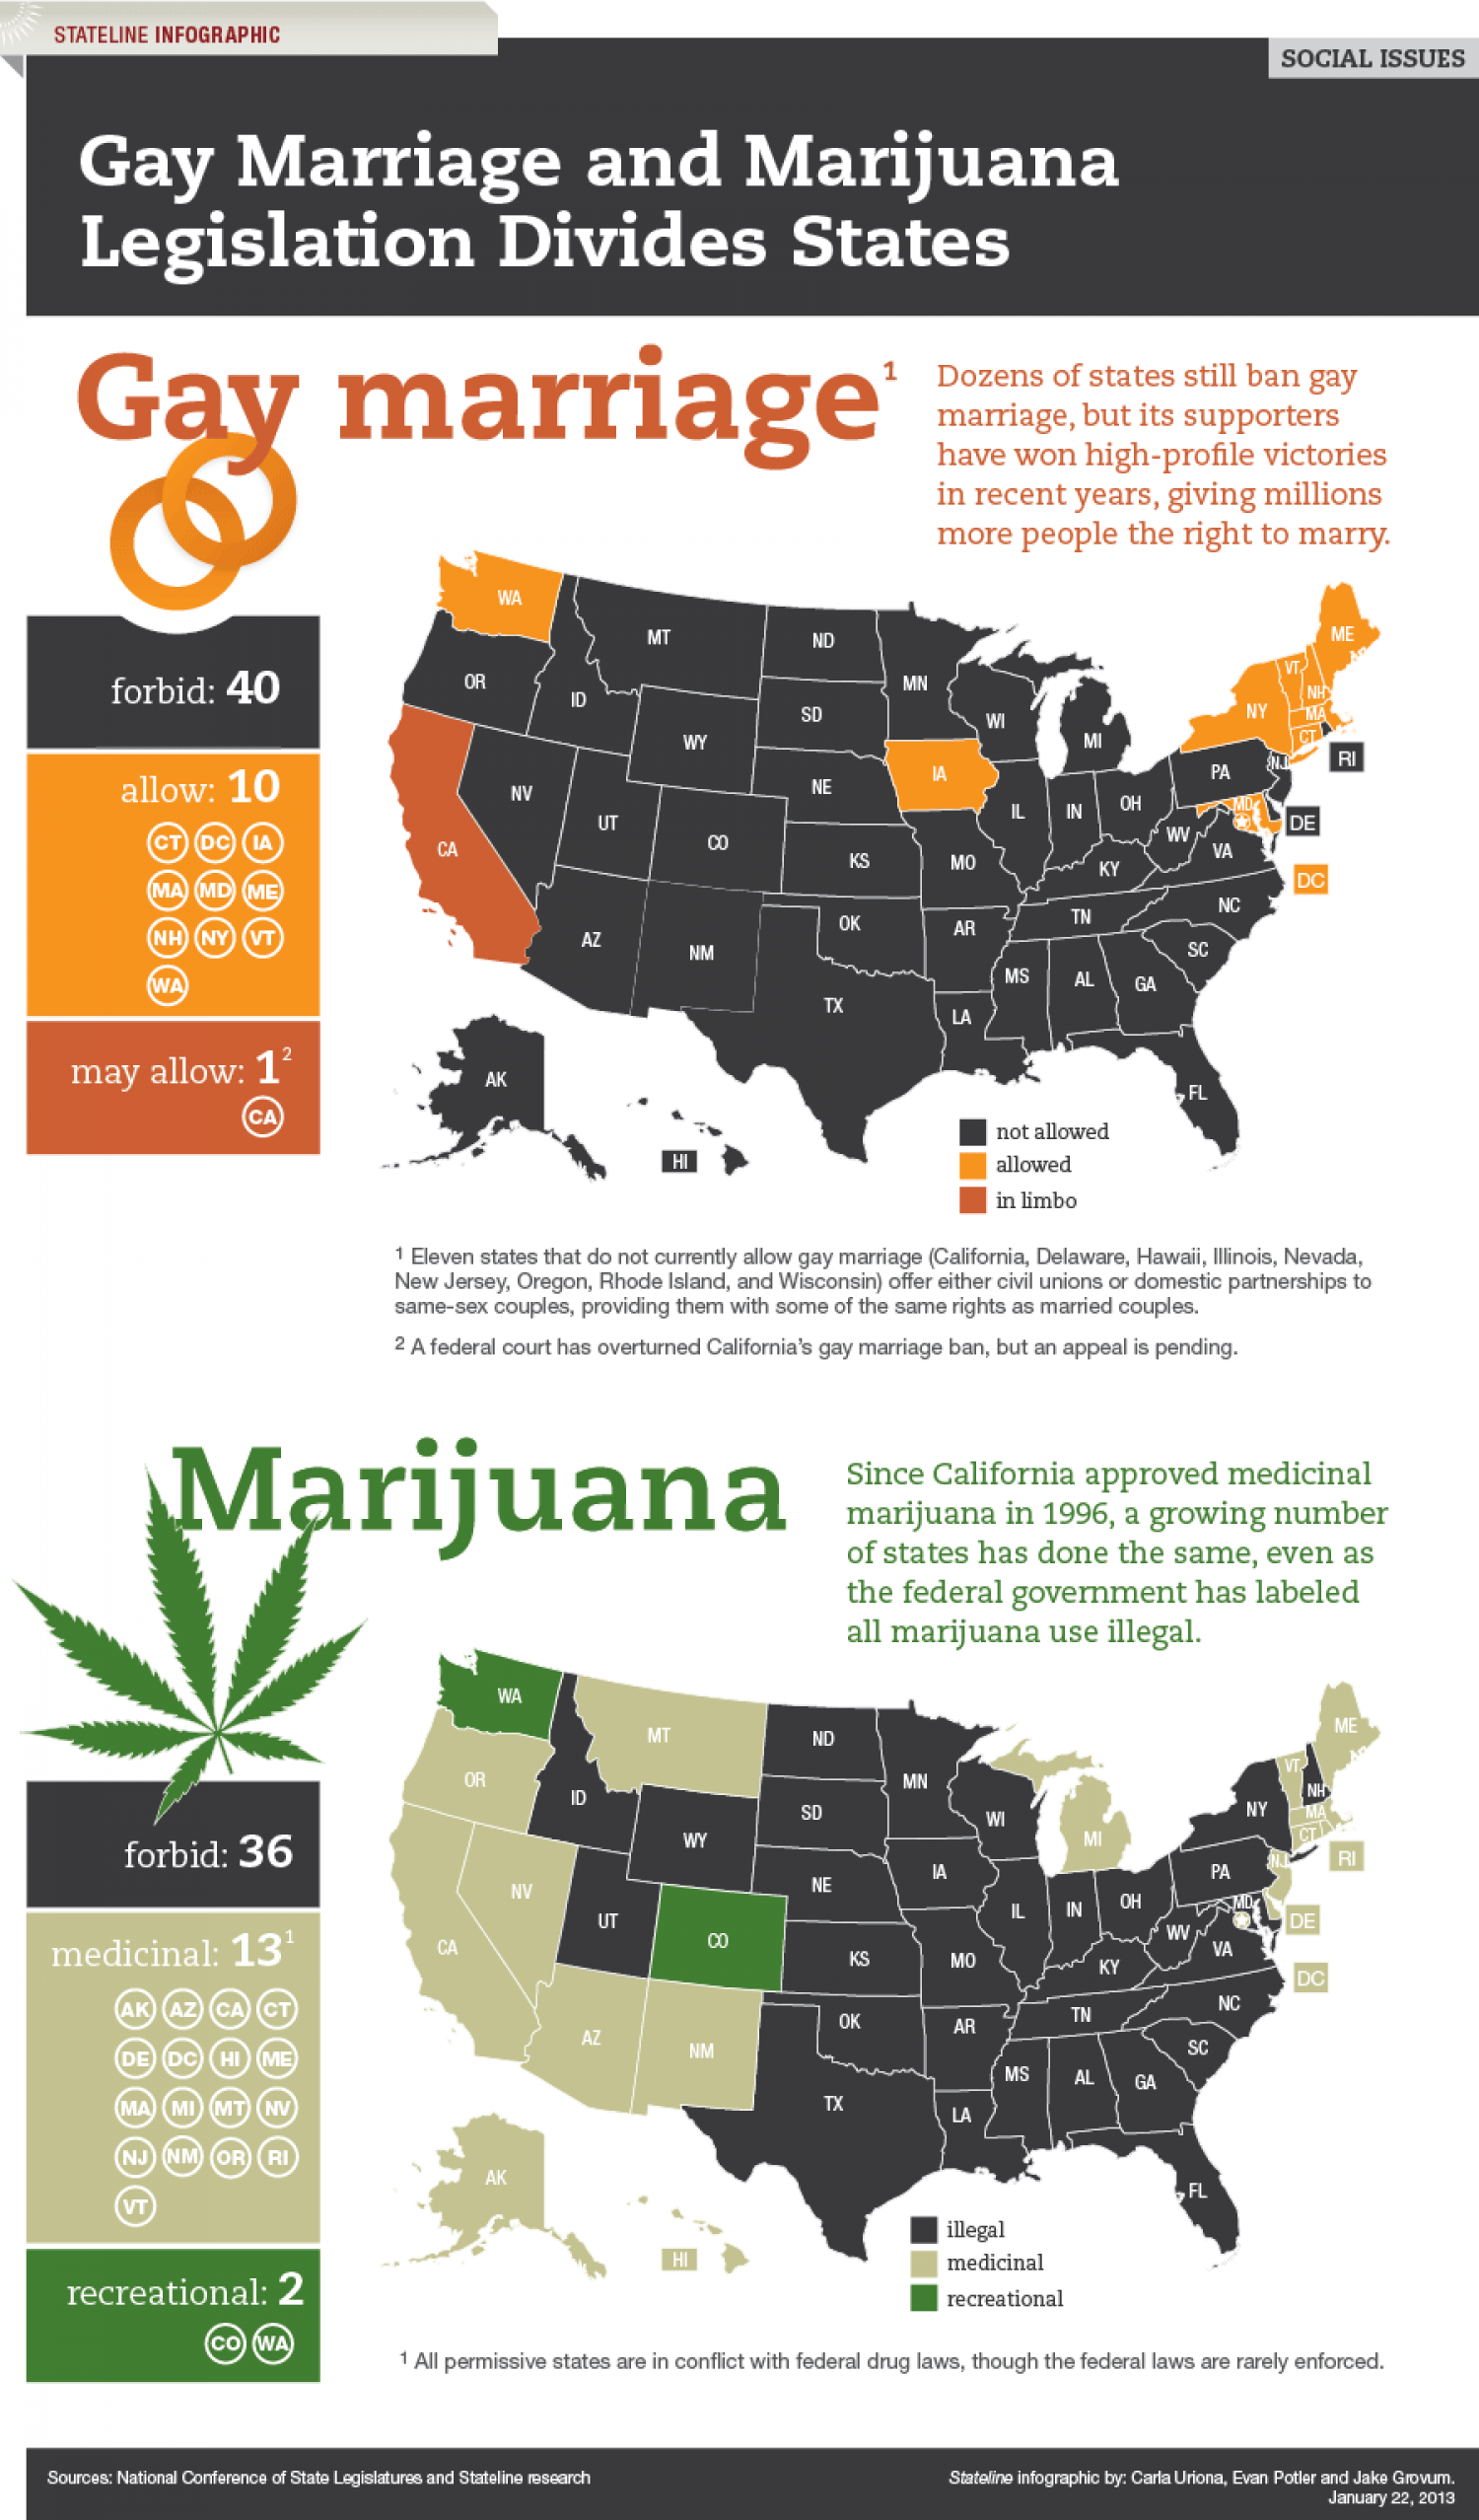 Gay Marriage and Marijuana Divide States Infographic